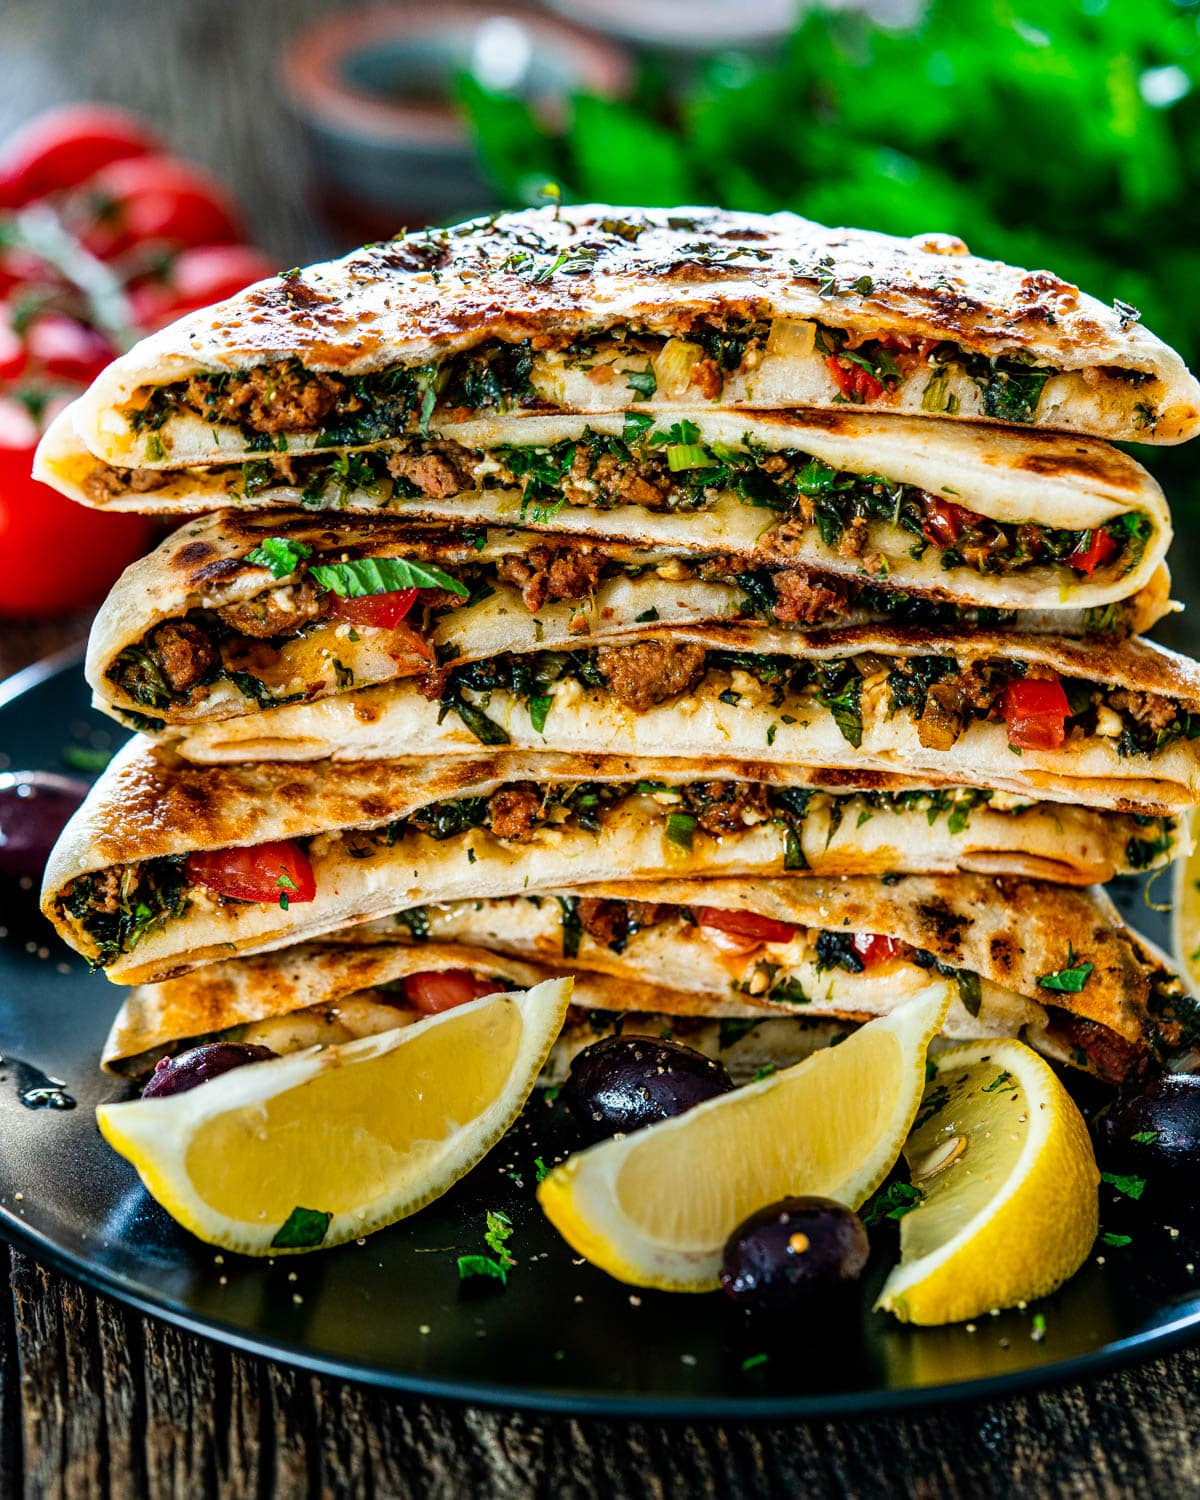 a stack of turkish gozleme with lamb on a black plate garnished with lemon slices